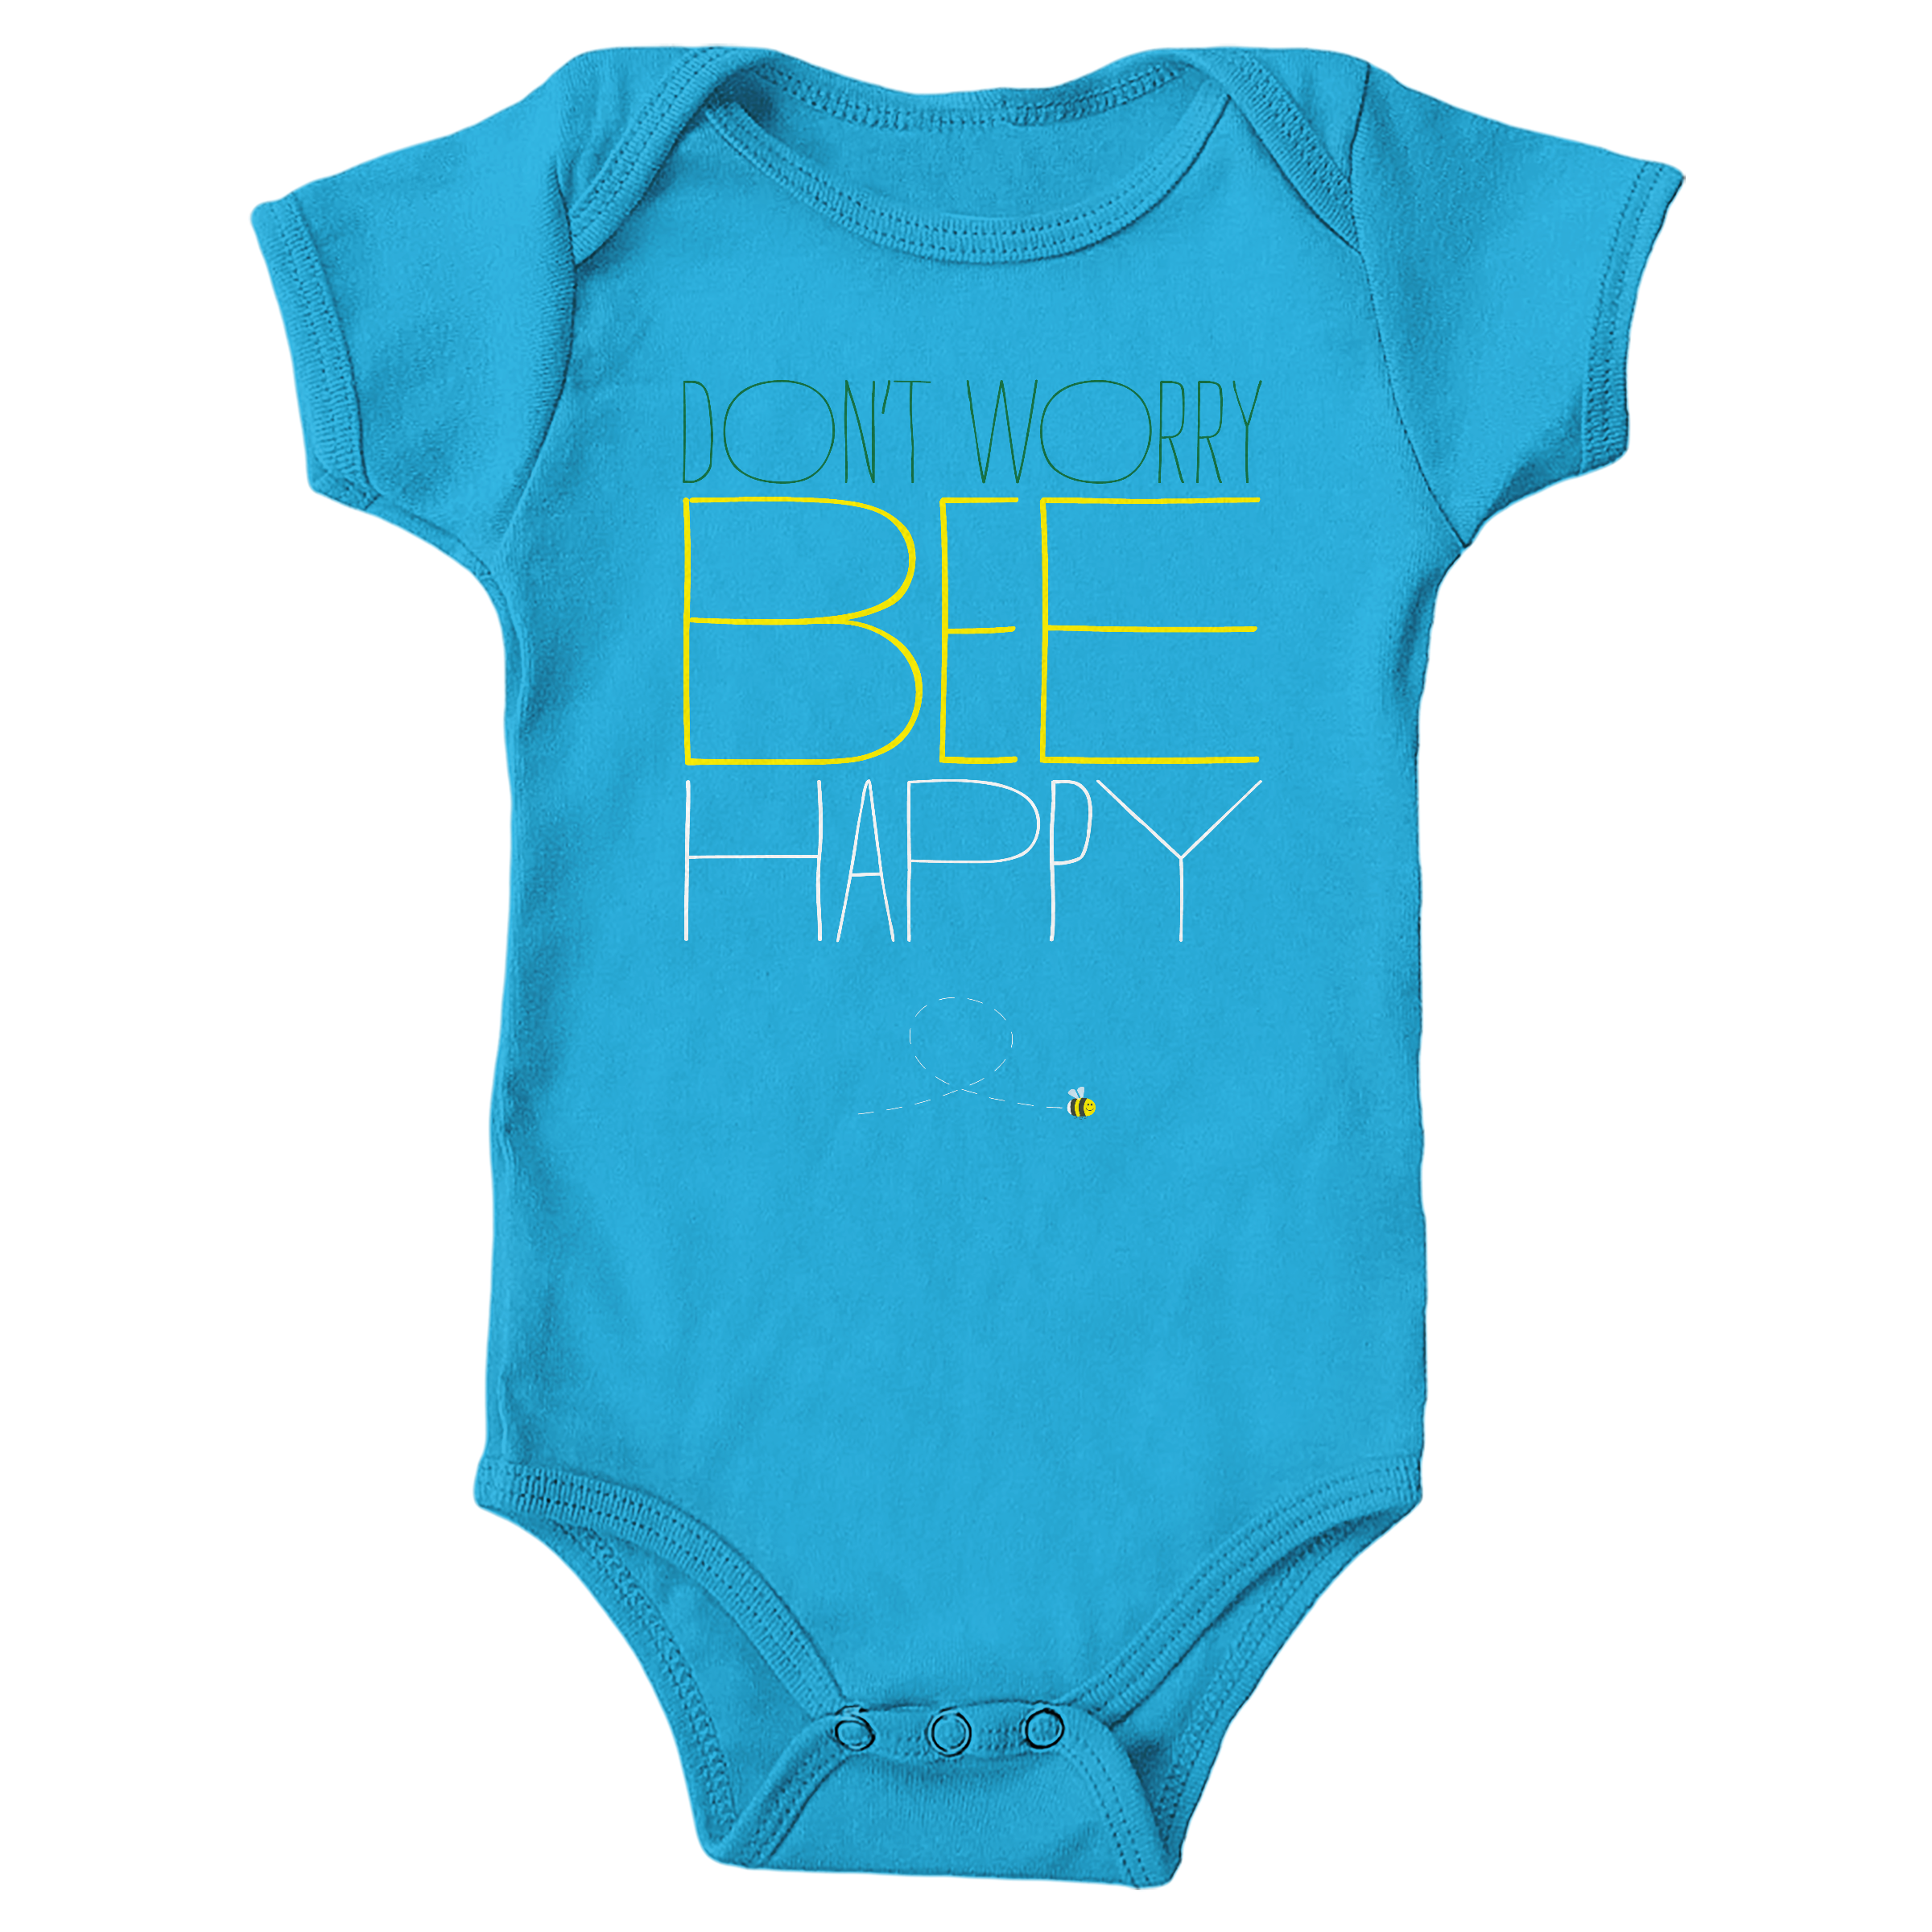 Don't Worry, Bee Happy Turquoise (Onesie)